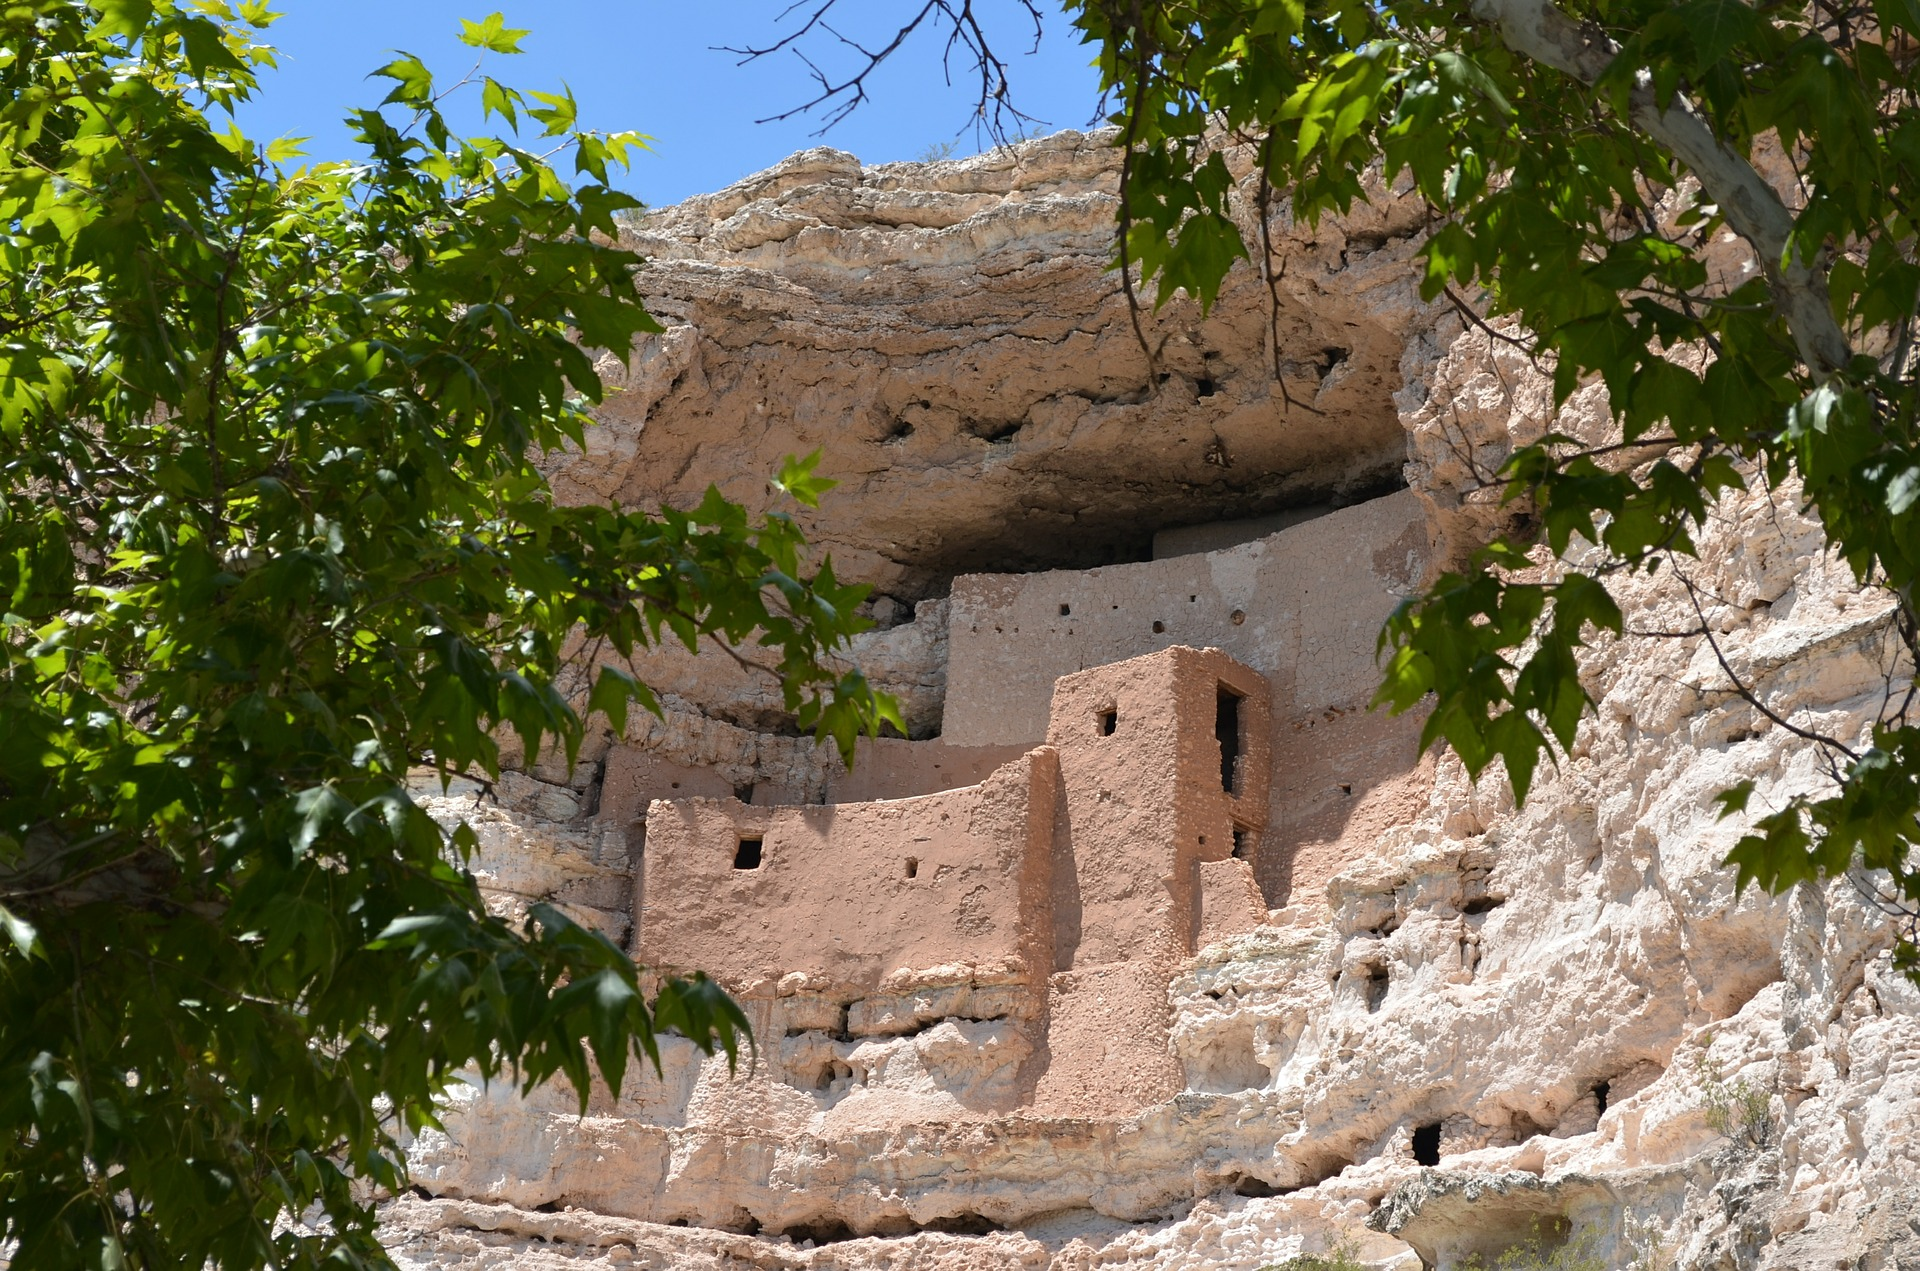 Montezuma's Castle, Camp Verde \\ These 7 Arizona Weekend Road Trips are a great way to get away a day or two and see everything that Arizona has to offer!